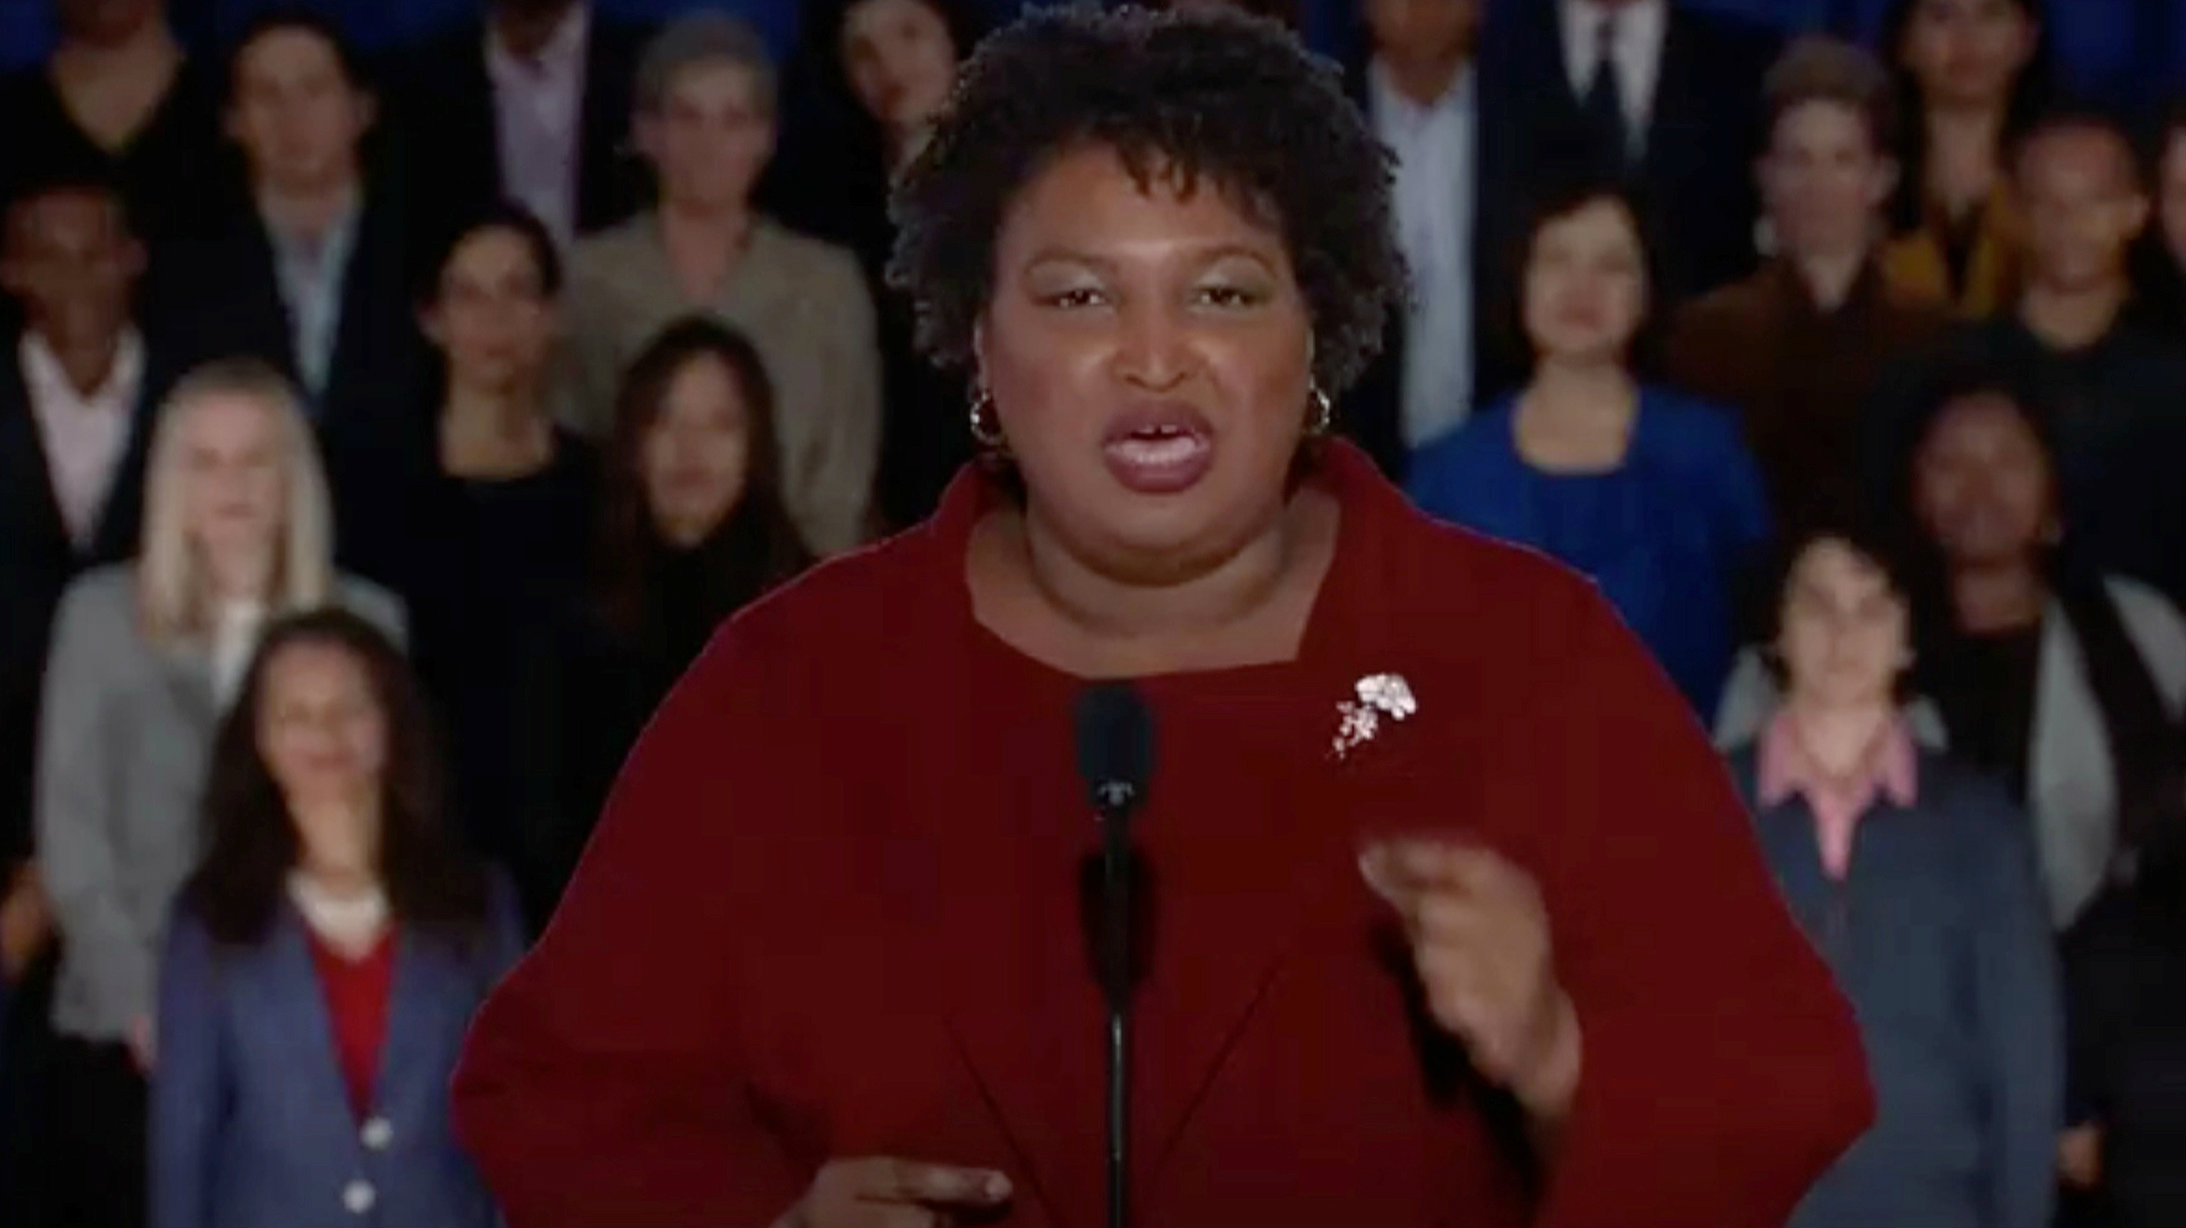 Stacey Abrams Democrat response to 2019 State of the Union